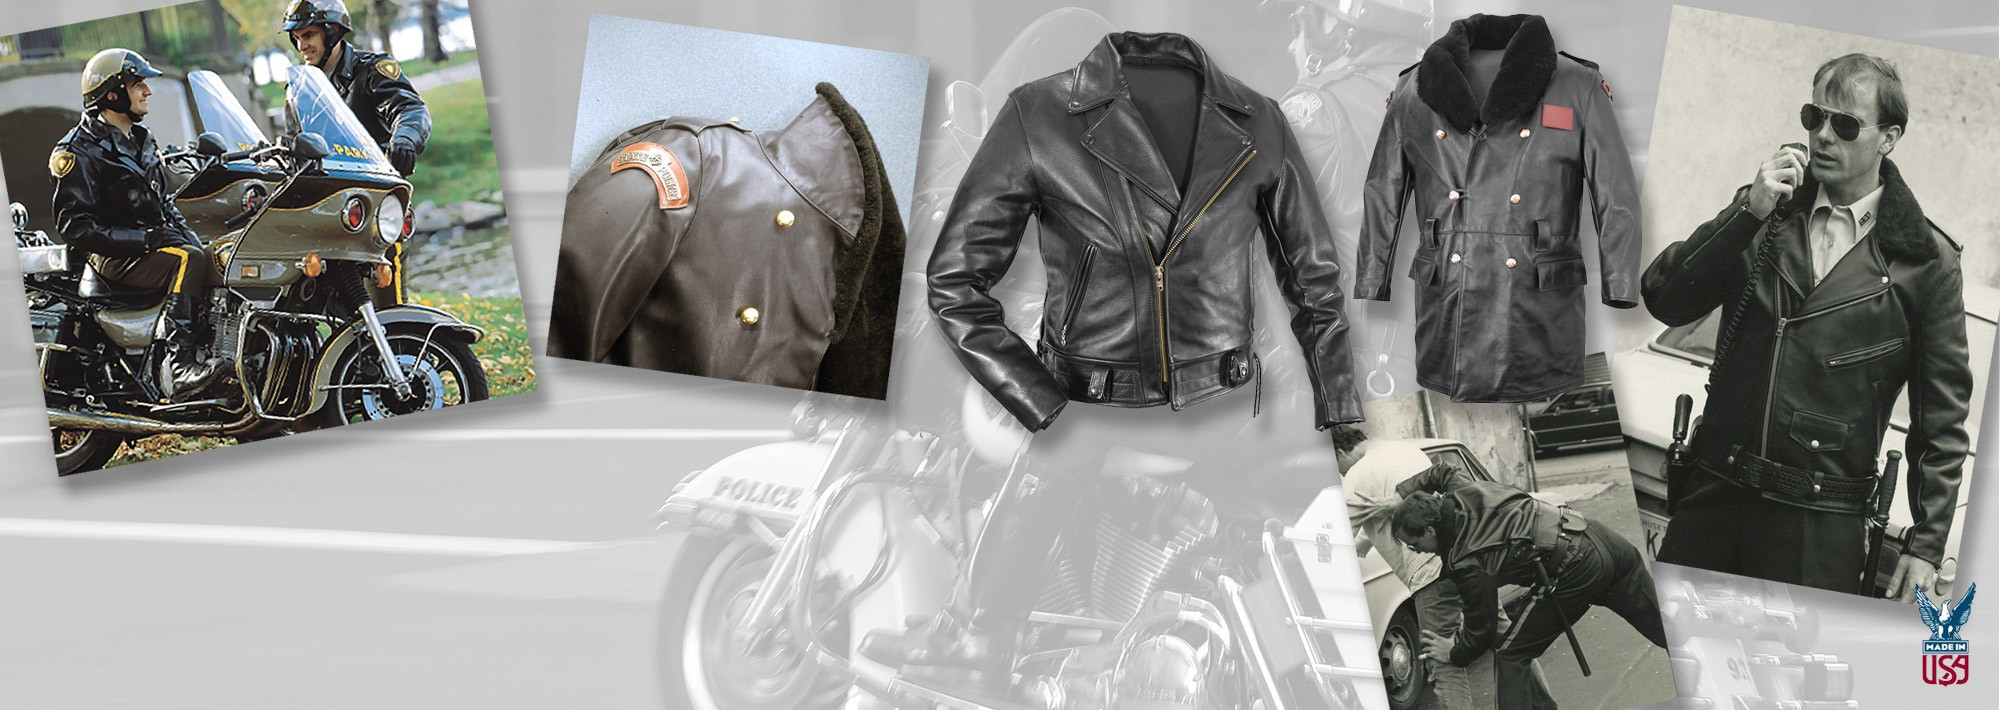 POLICE LEATHER JACKETS